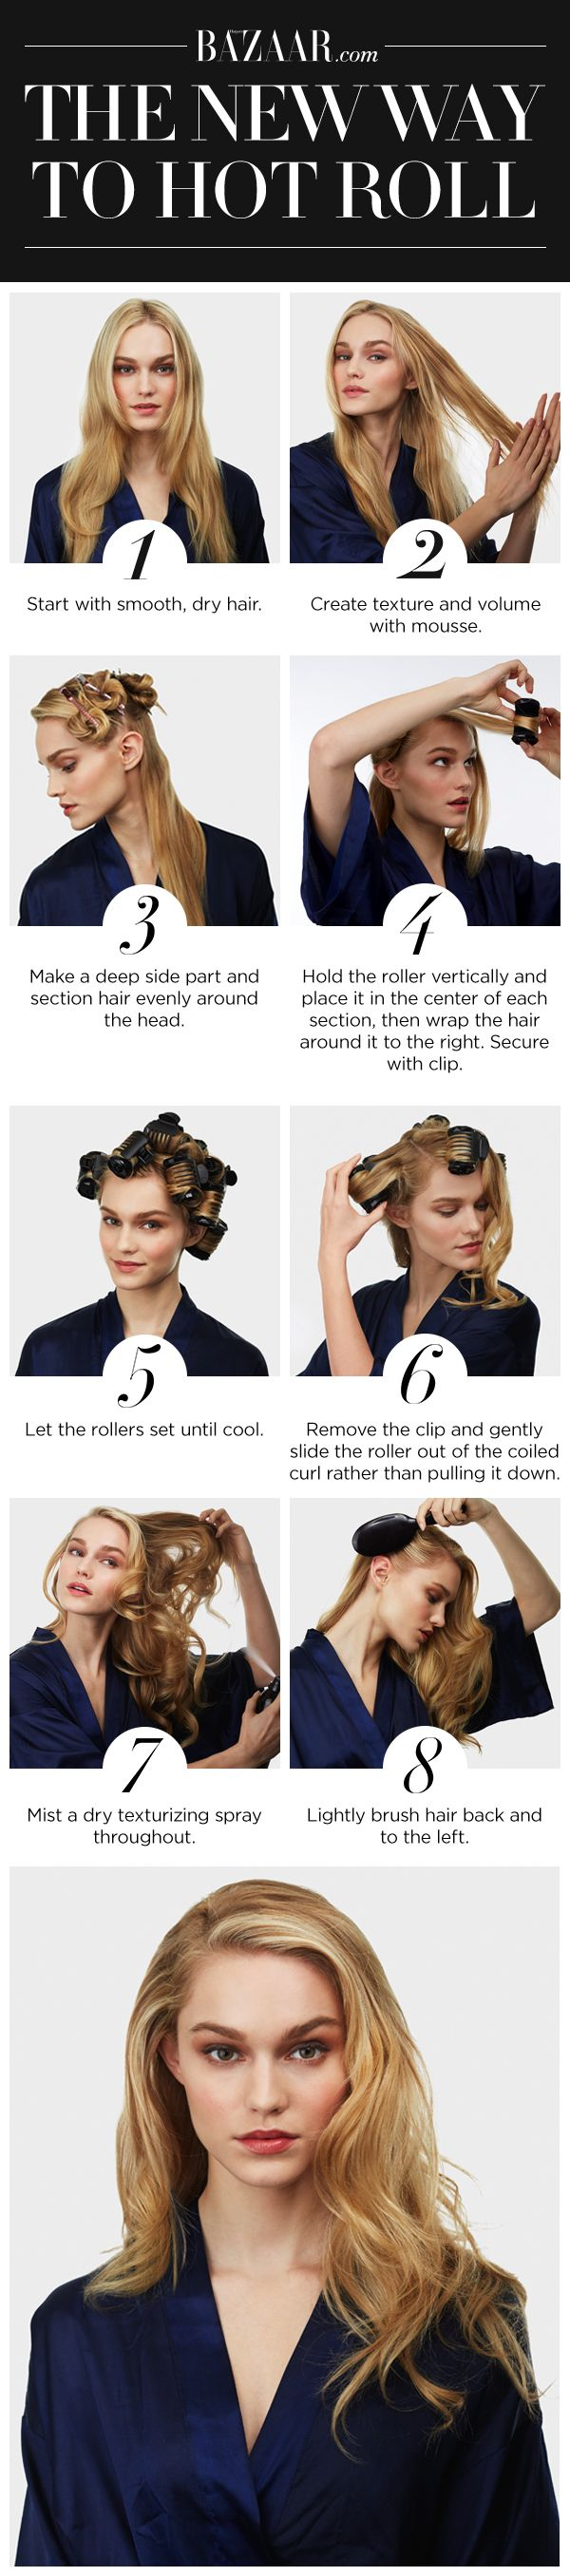 Click through for the full how-to guide for getting perfect waves with rollers.